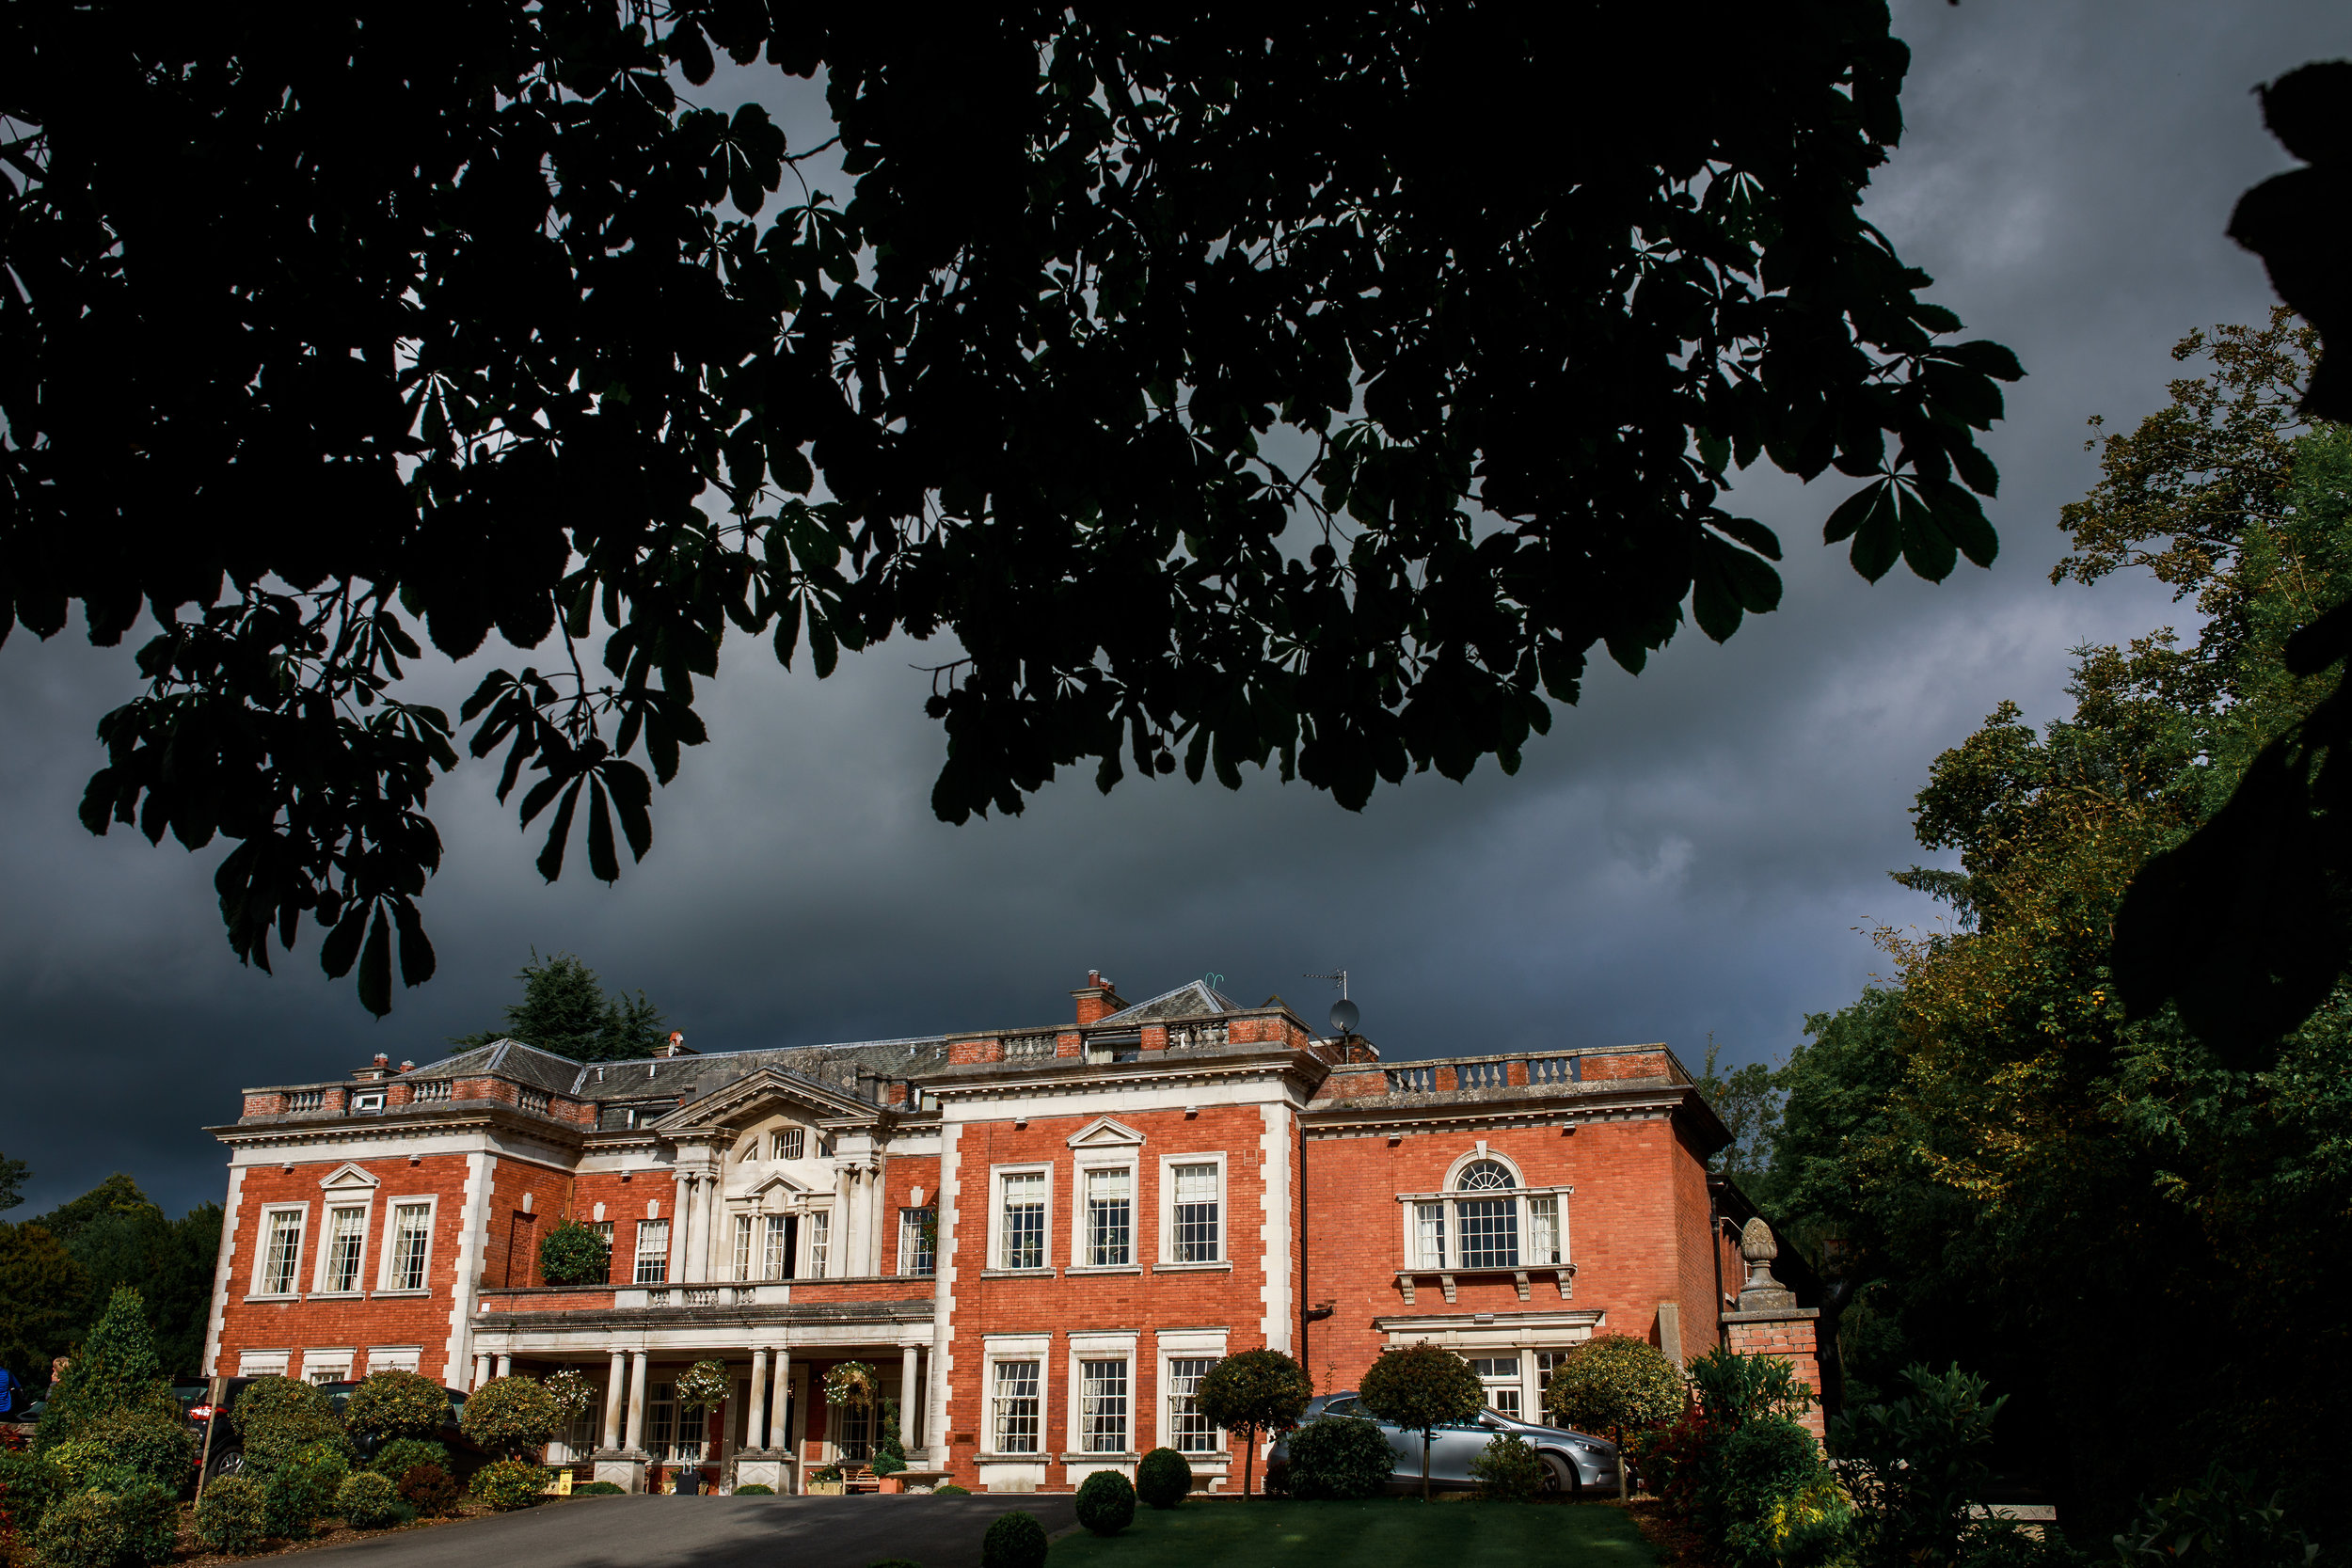 Eaves Hall in sunshine on stormy day